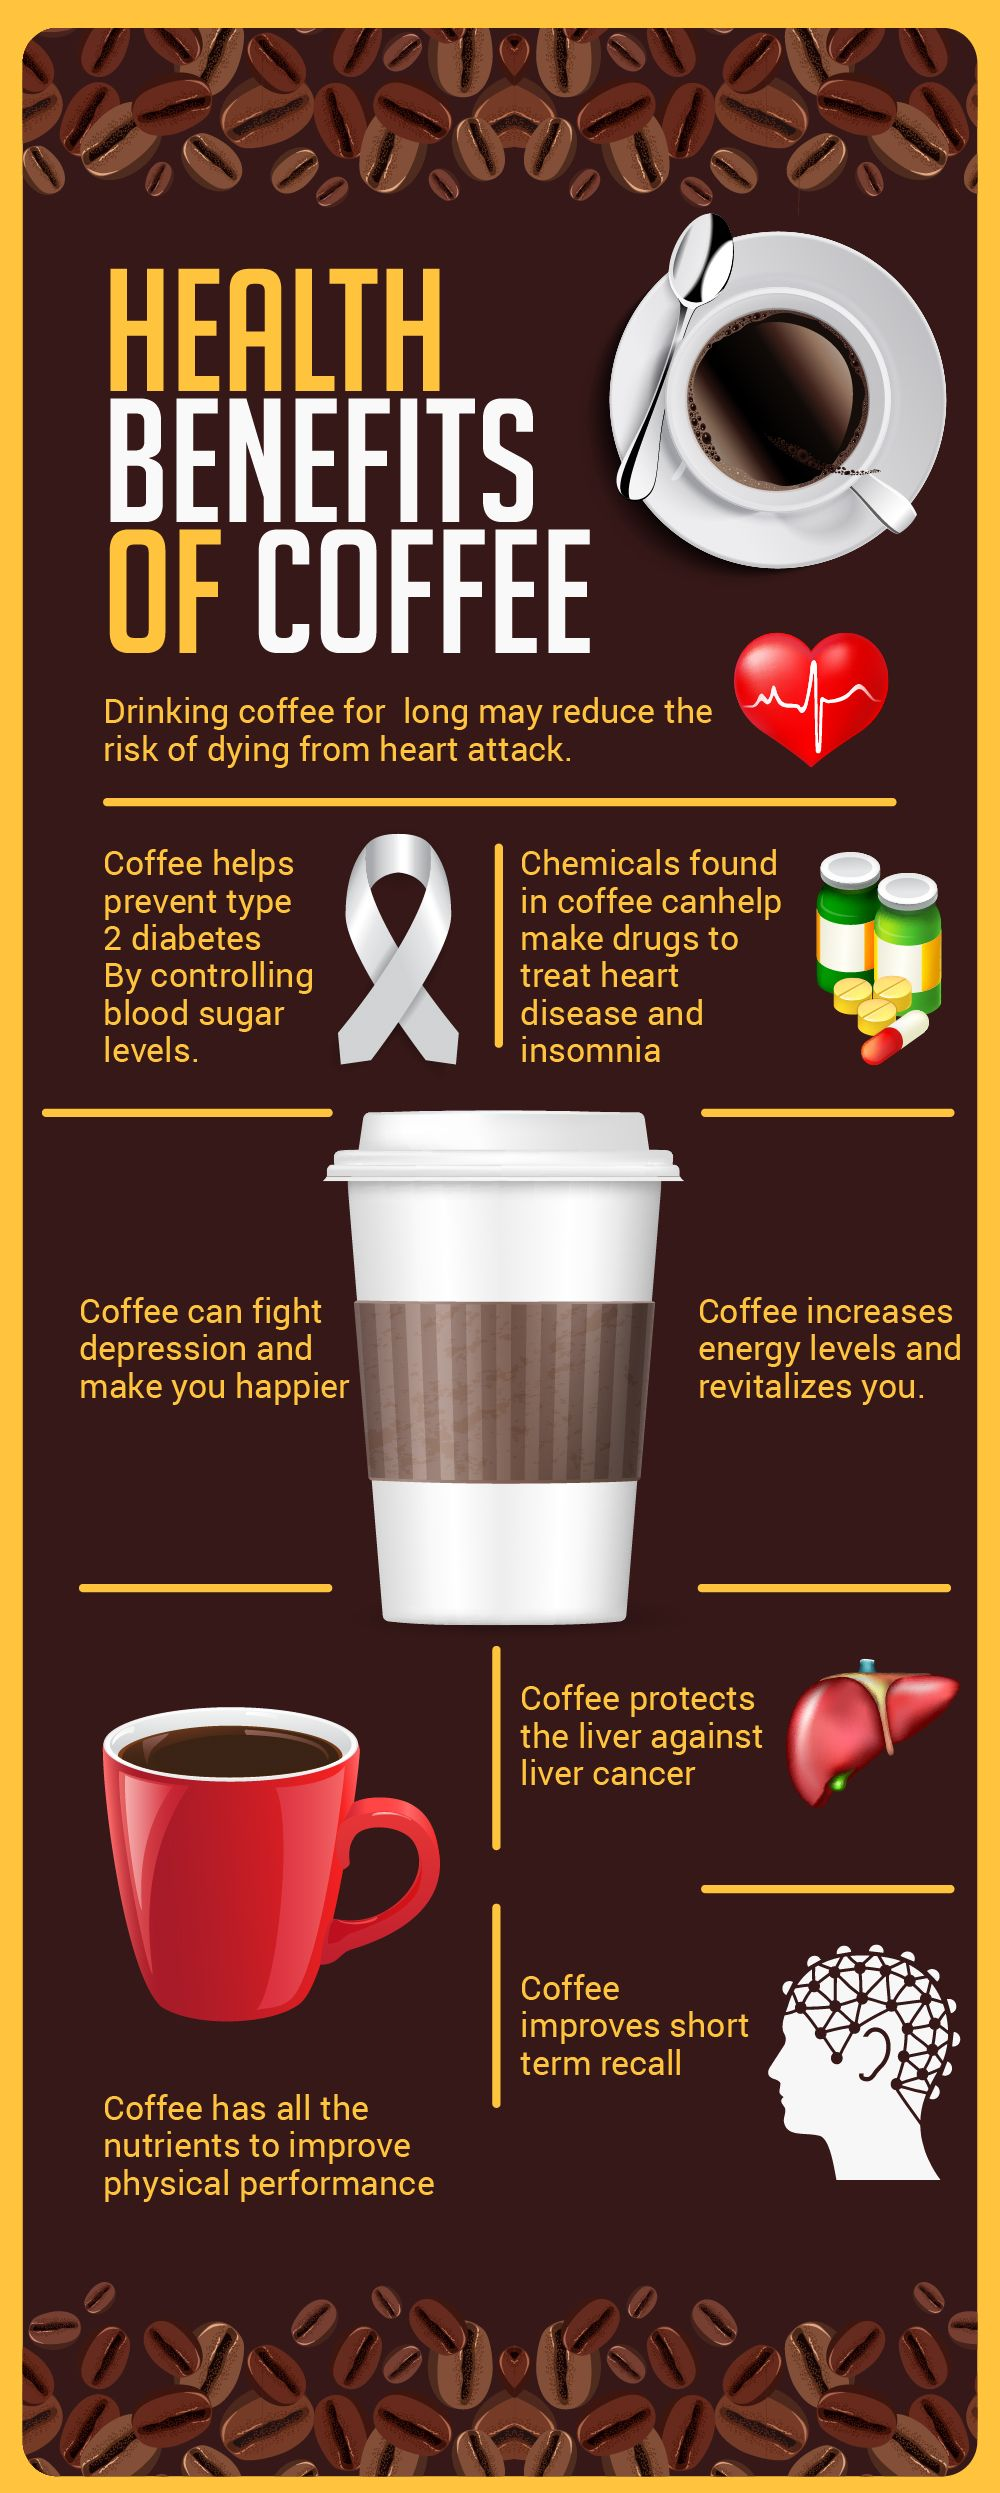 For Decades Coffee Has Caused A Stir Over Health Matters With Some People Believing It Is Good For Health And Othe Coffee Health Benefits Sugar Disease Health